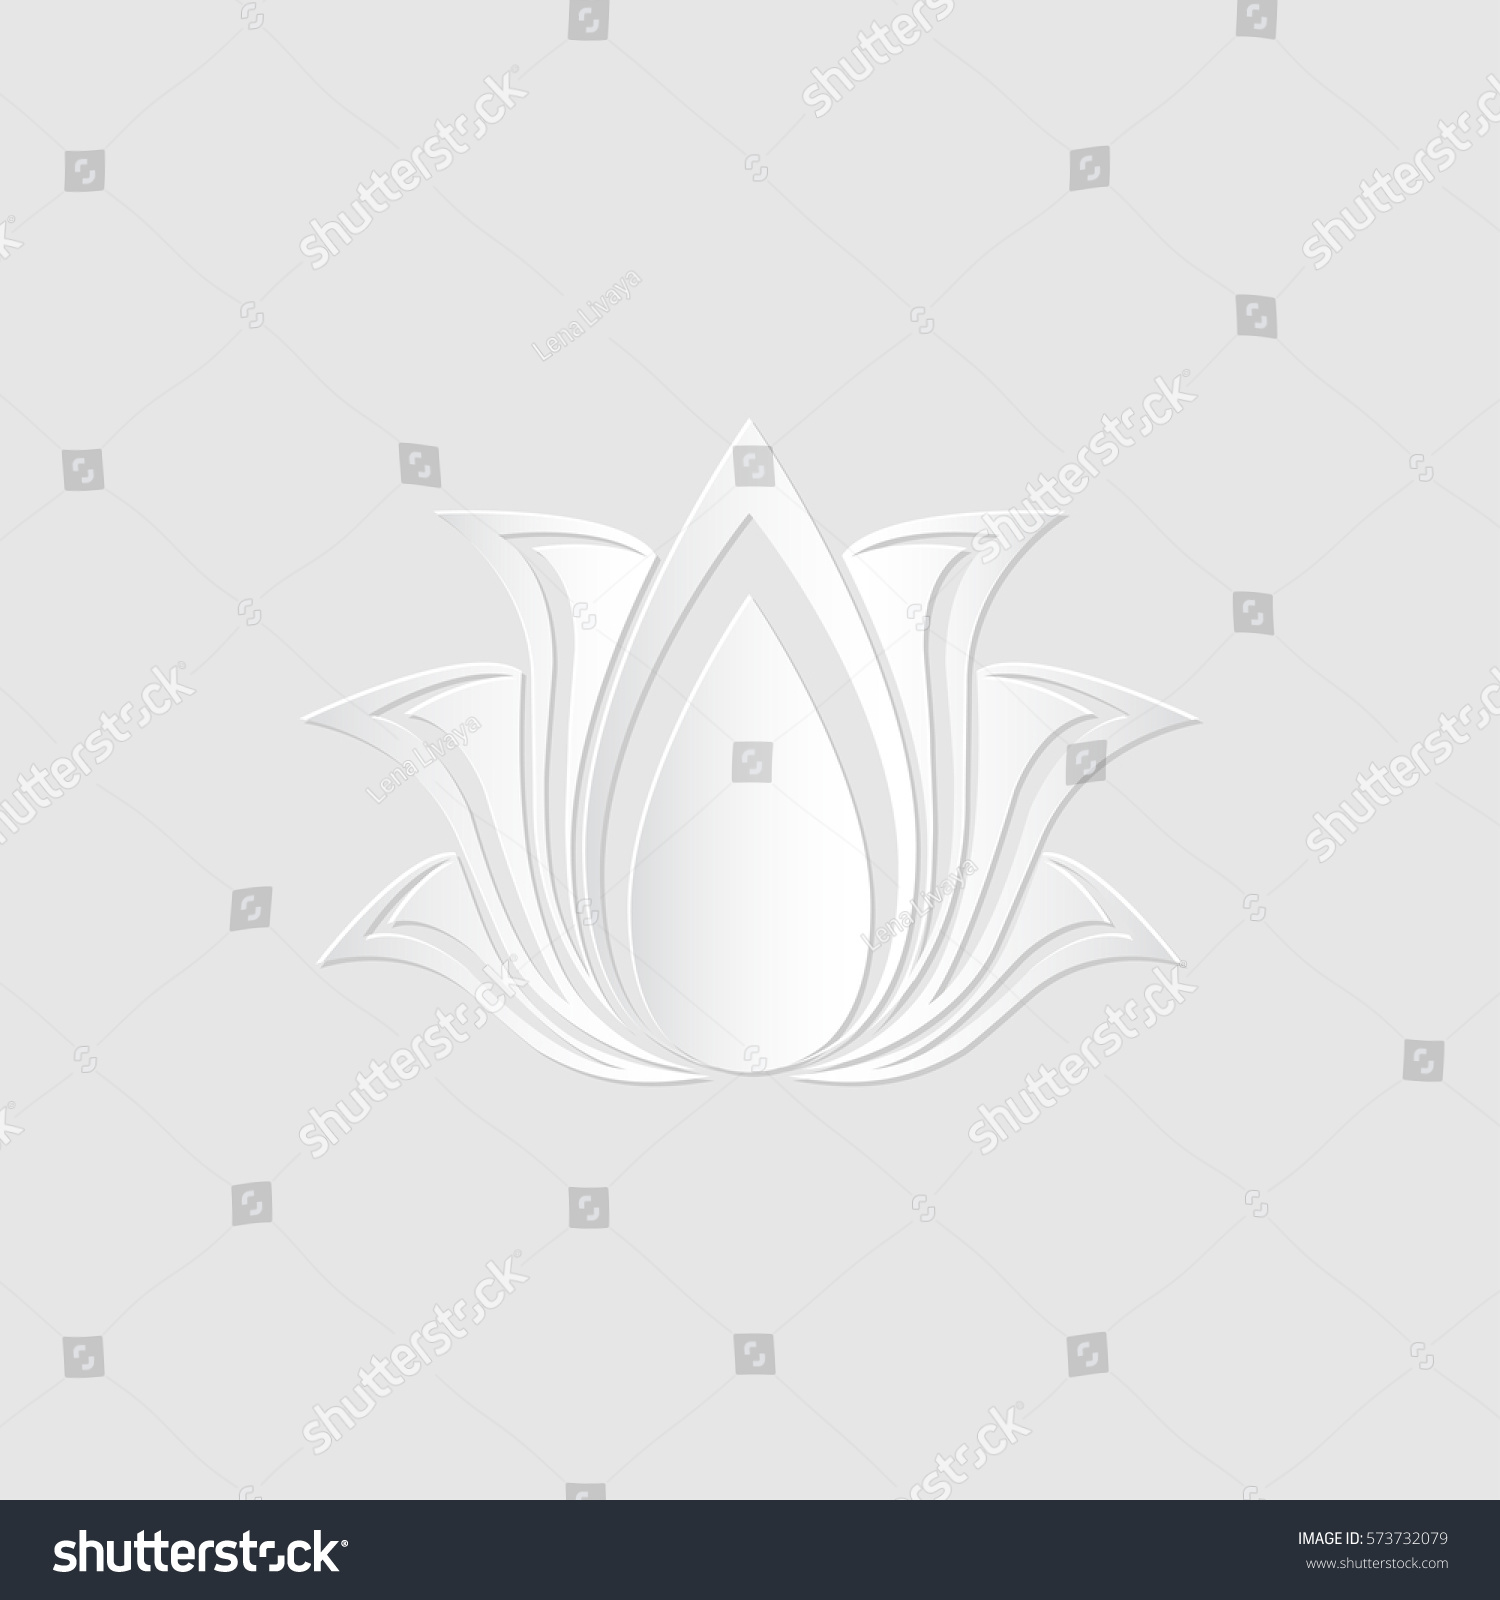 100 lotus flower template stylized lotus flower icon vector lotus flower template abstract vector lotus flower silhouette cut stock vector 573732079 lotus flower template pronofoot35fo Choice Image